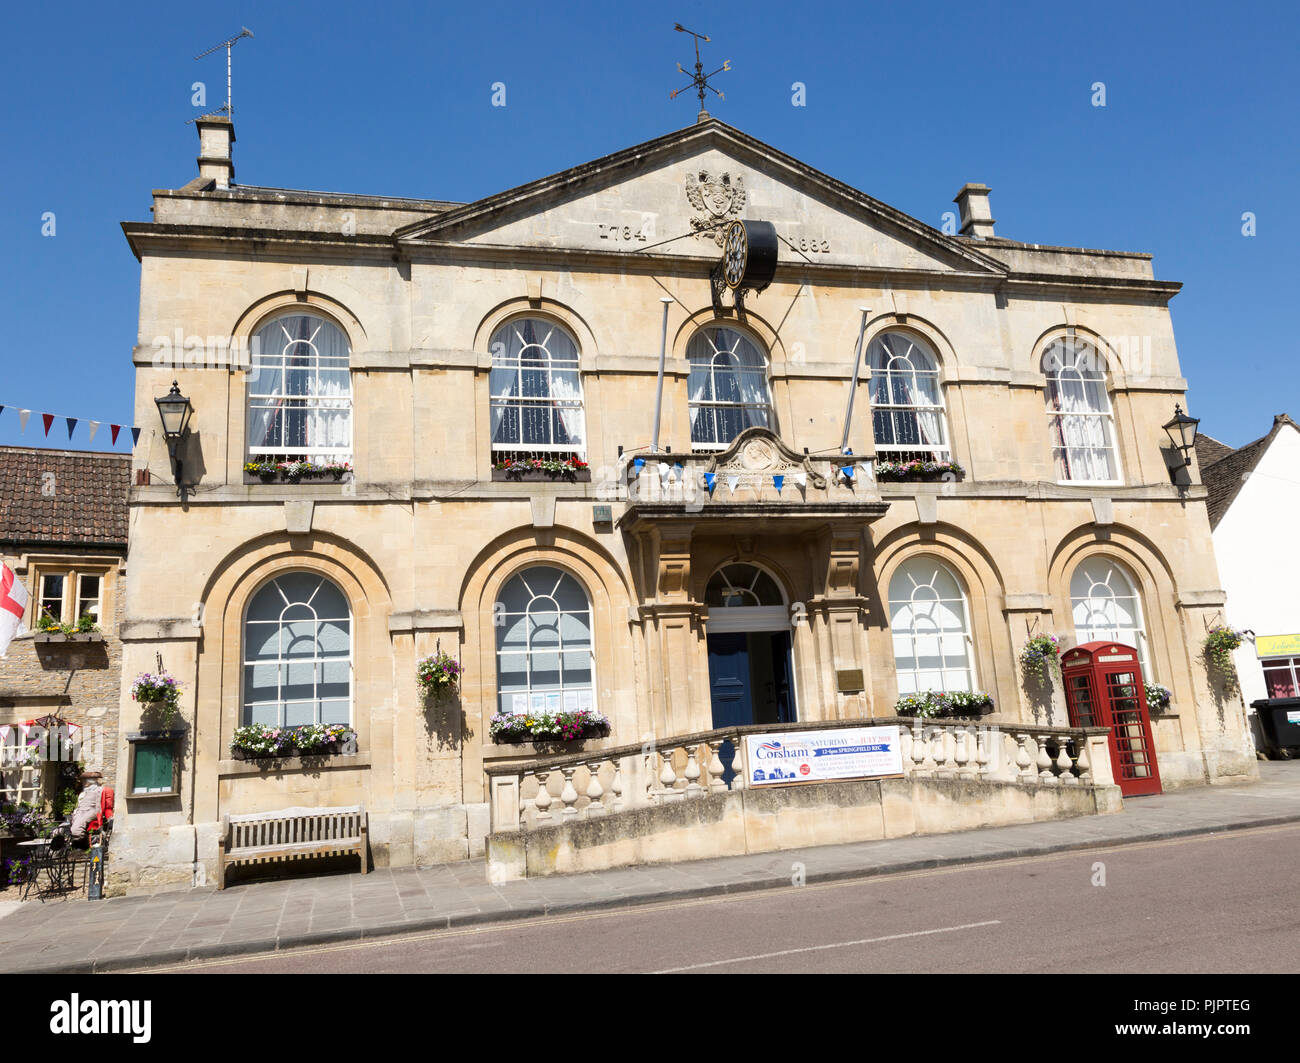 Georgian architecture of Town Hall building, Corsham, Wiltshire, England, UK dating from 1784 Stock Photo